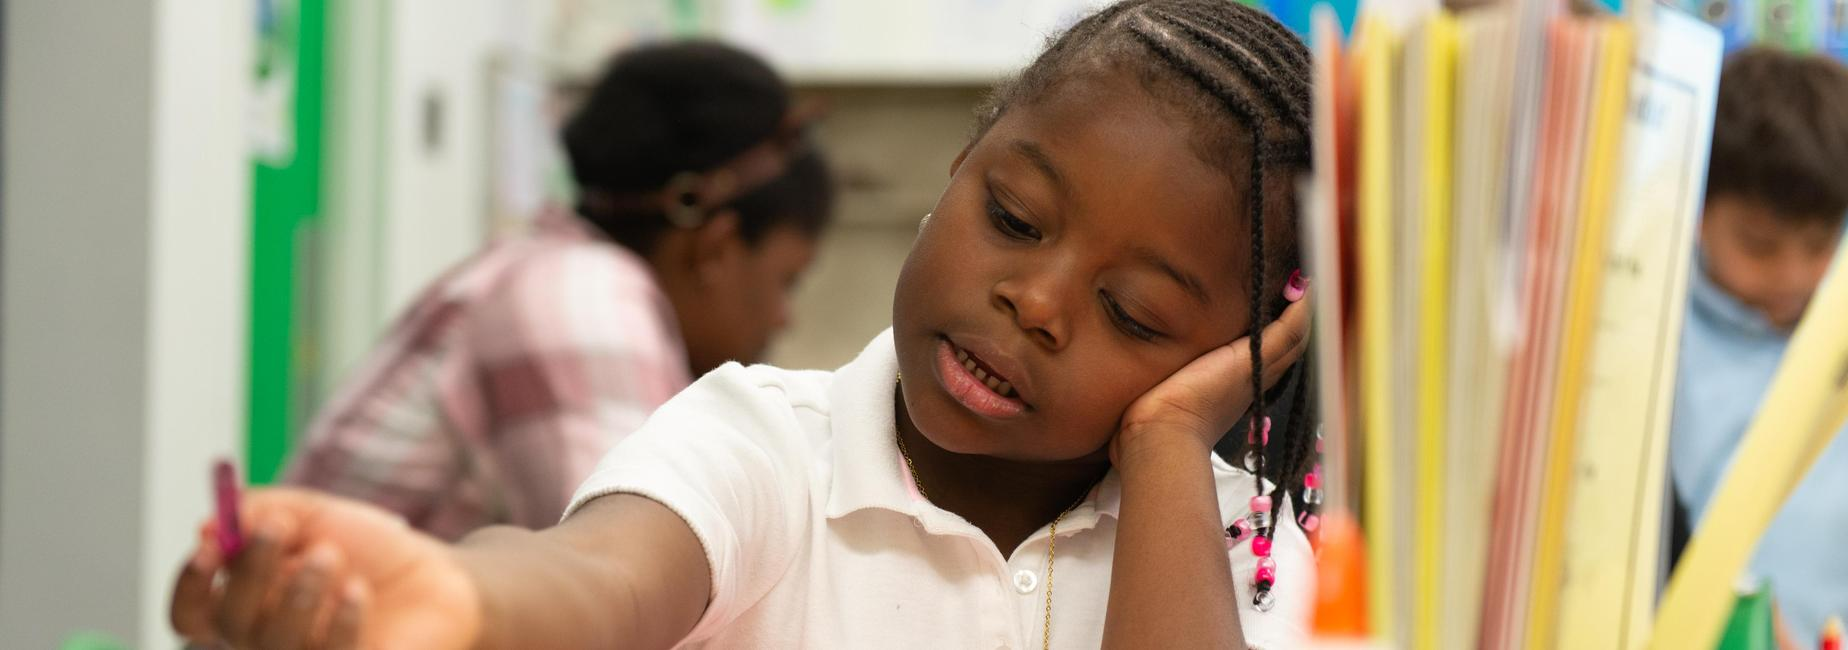 An elementary school student writing at a table, leaning her head against her hand.